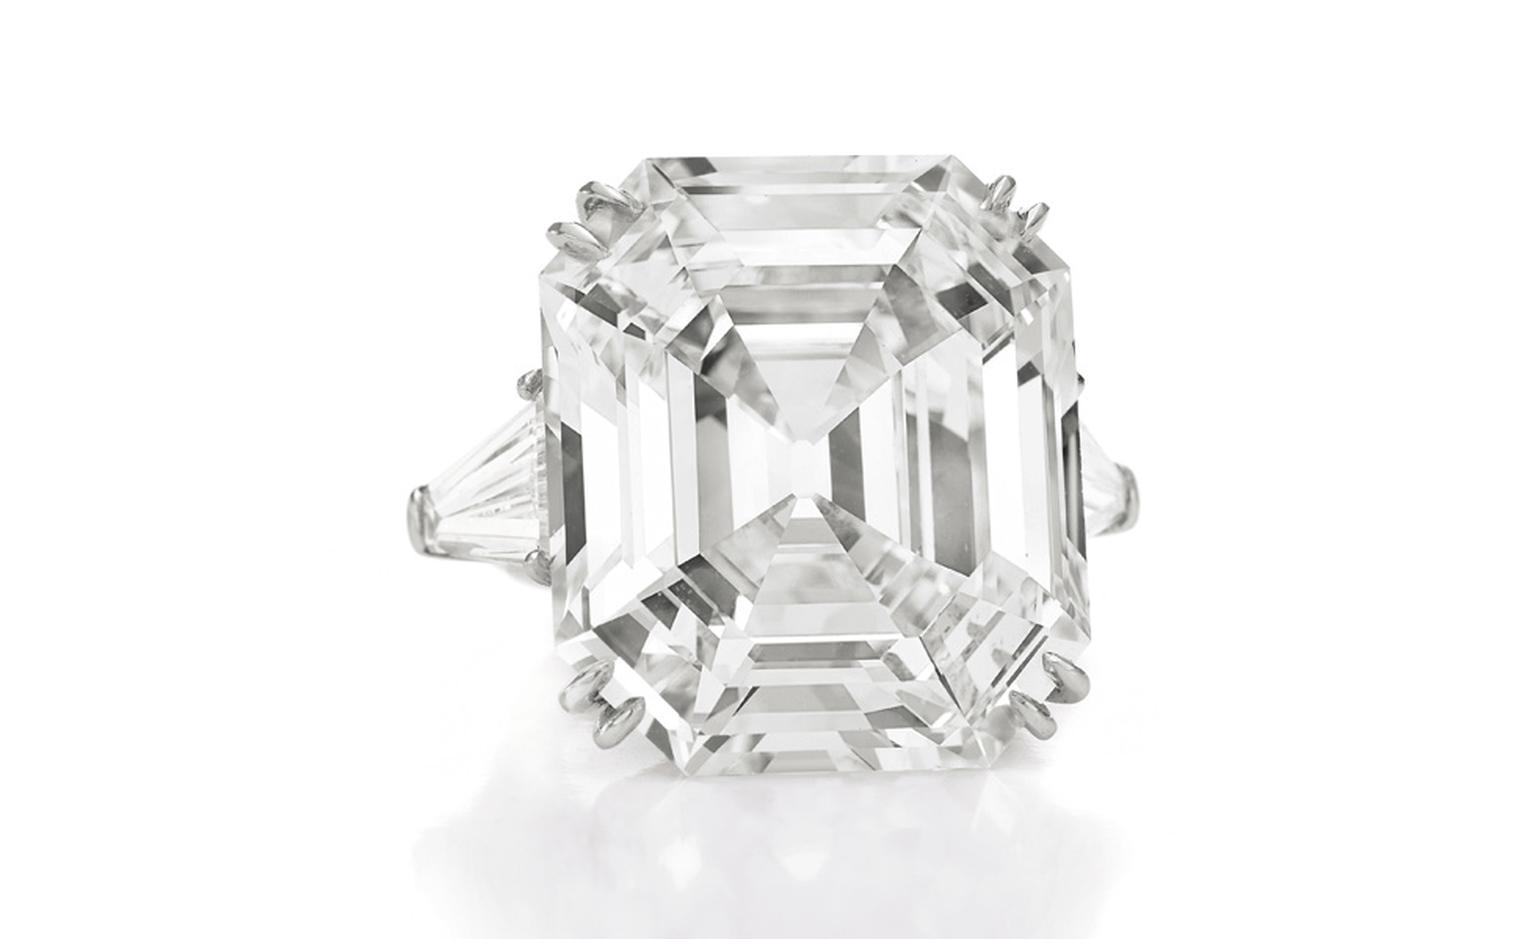 The 33 carat Elizabeth Taylor diamond ring. D colour and potentially internally flawless - if repolished to remove the knocks from being worn by Liz Taylor nearly every day of her life.